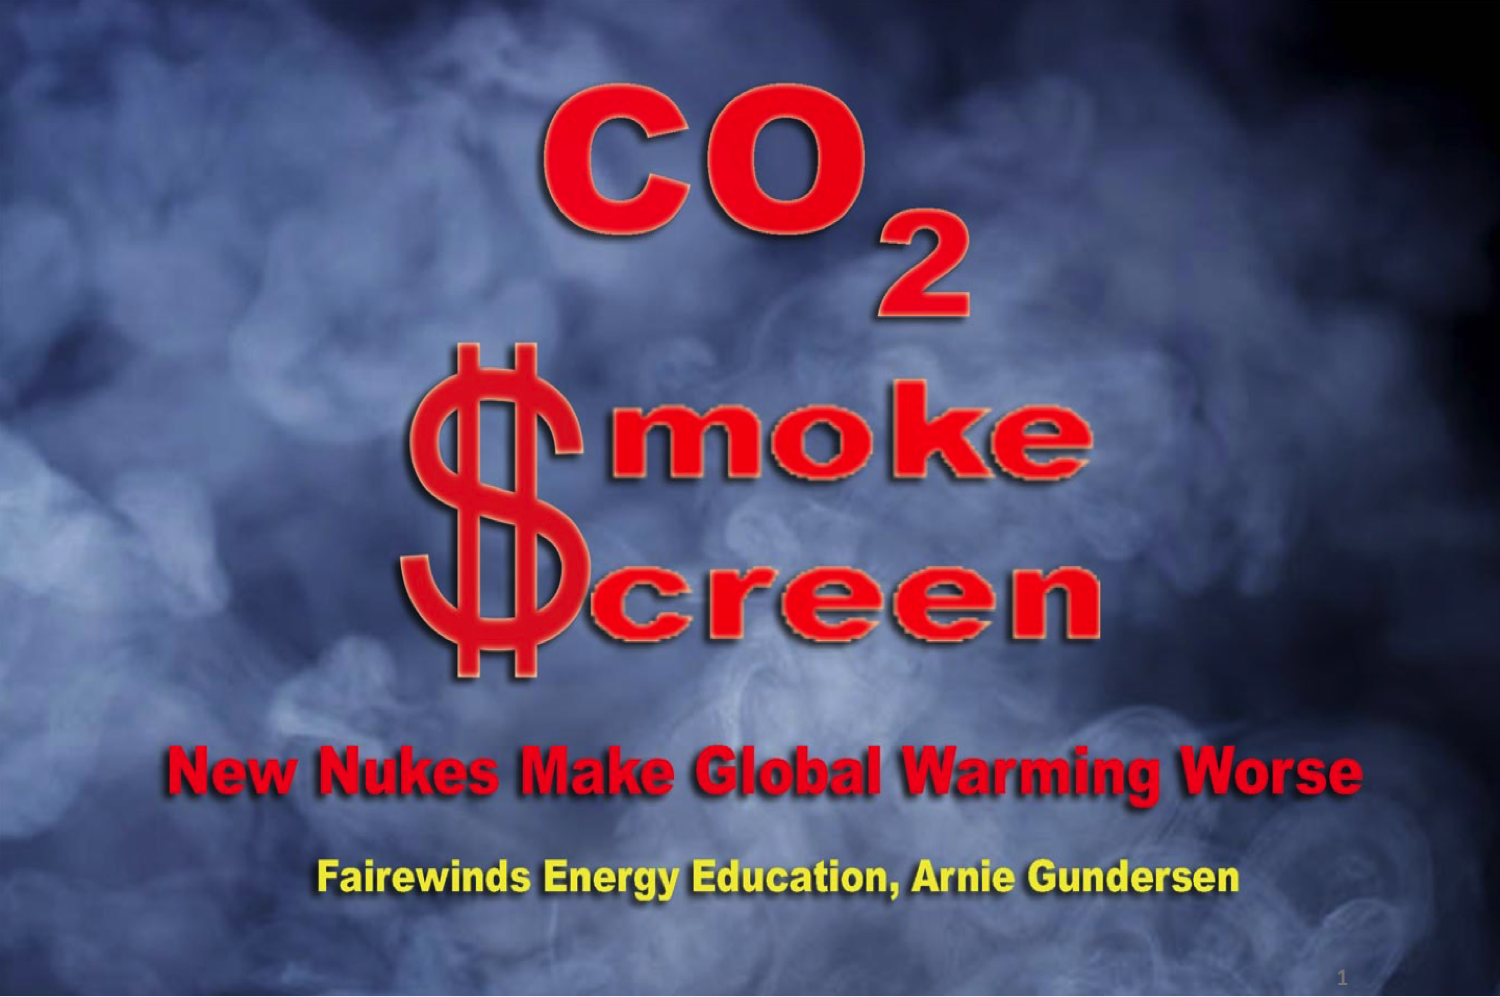 co2 teaser.png